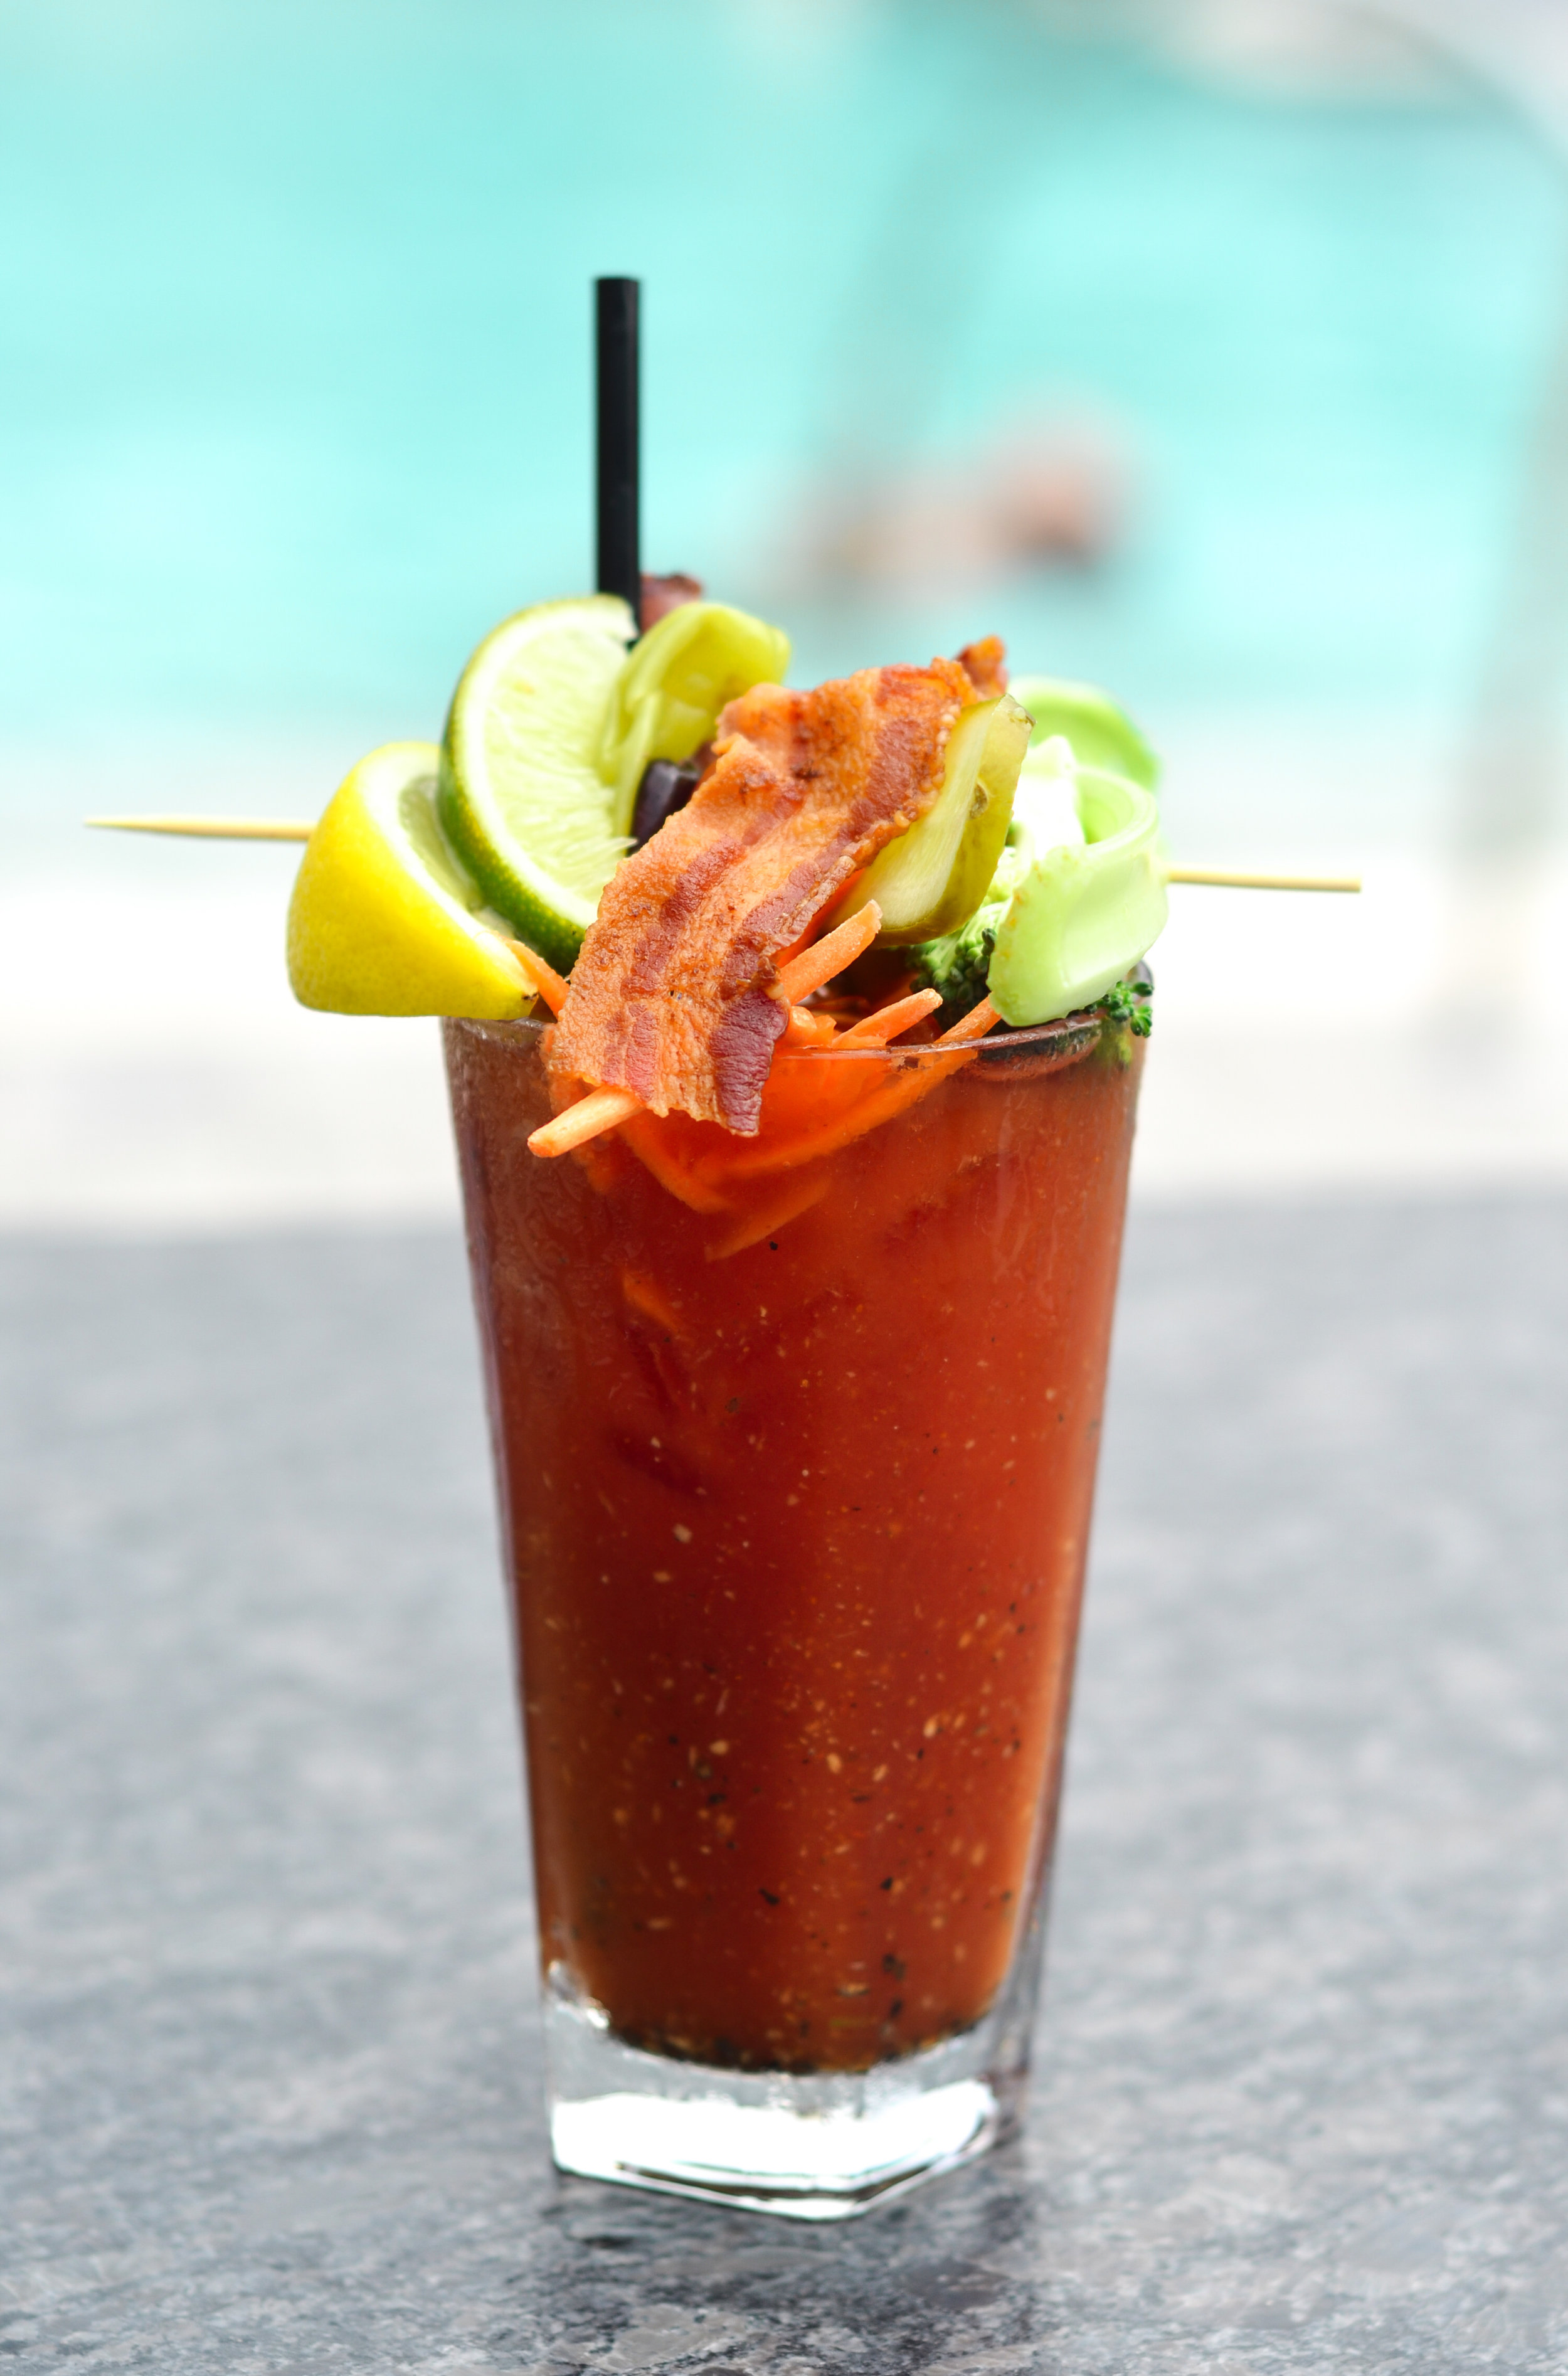 Bloody Mary cocktail by the pool